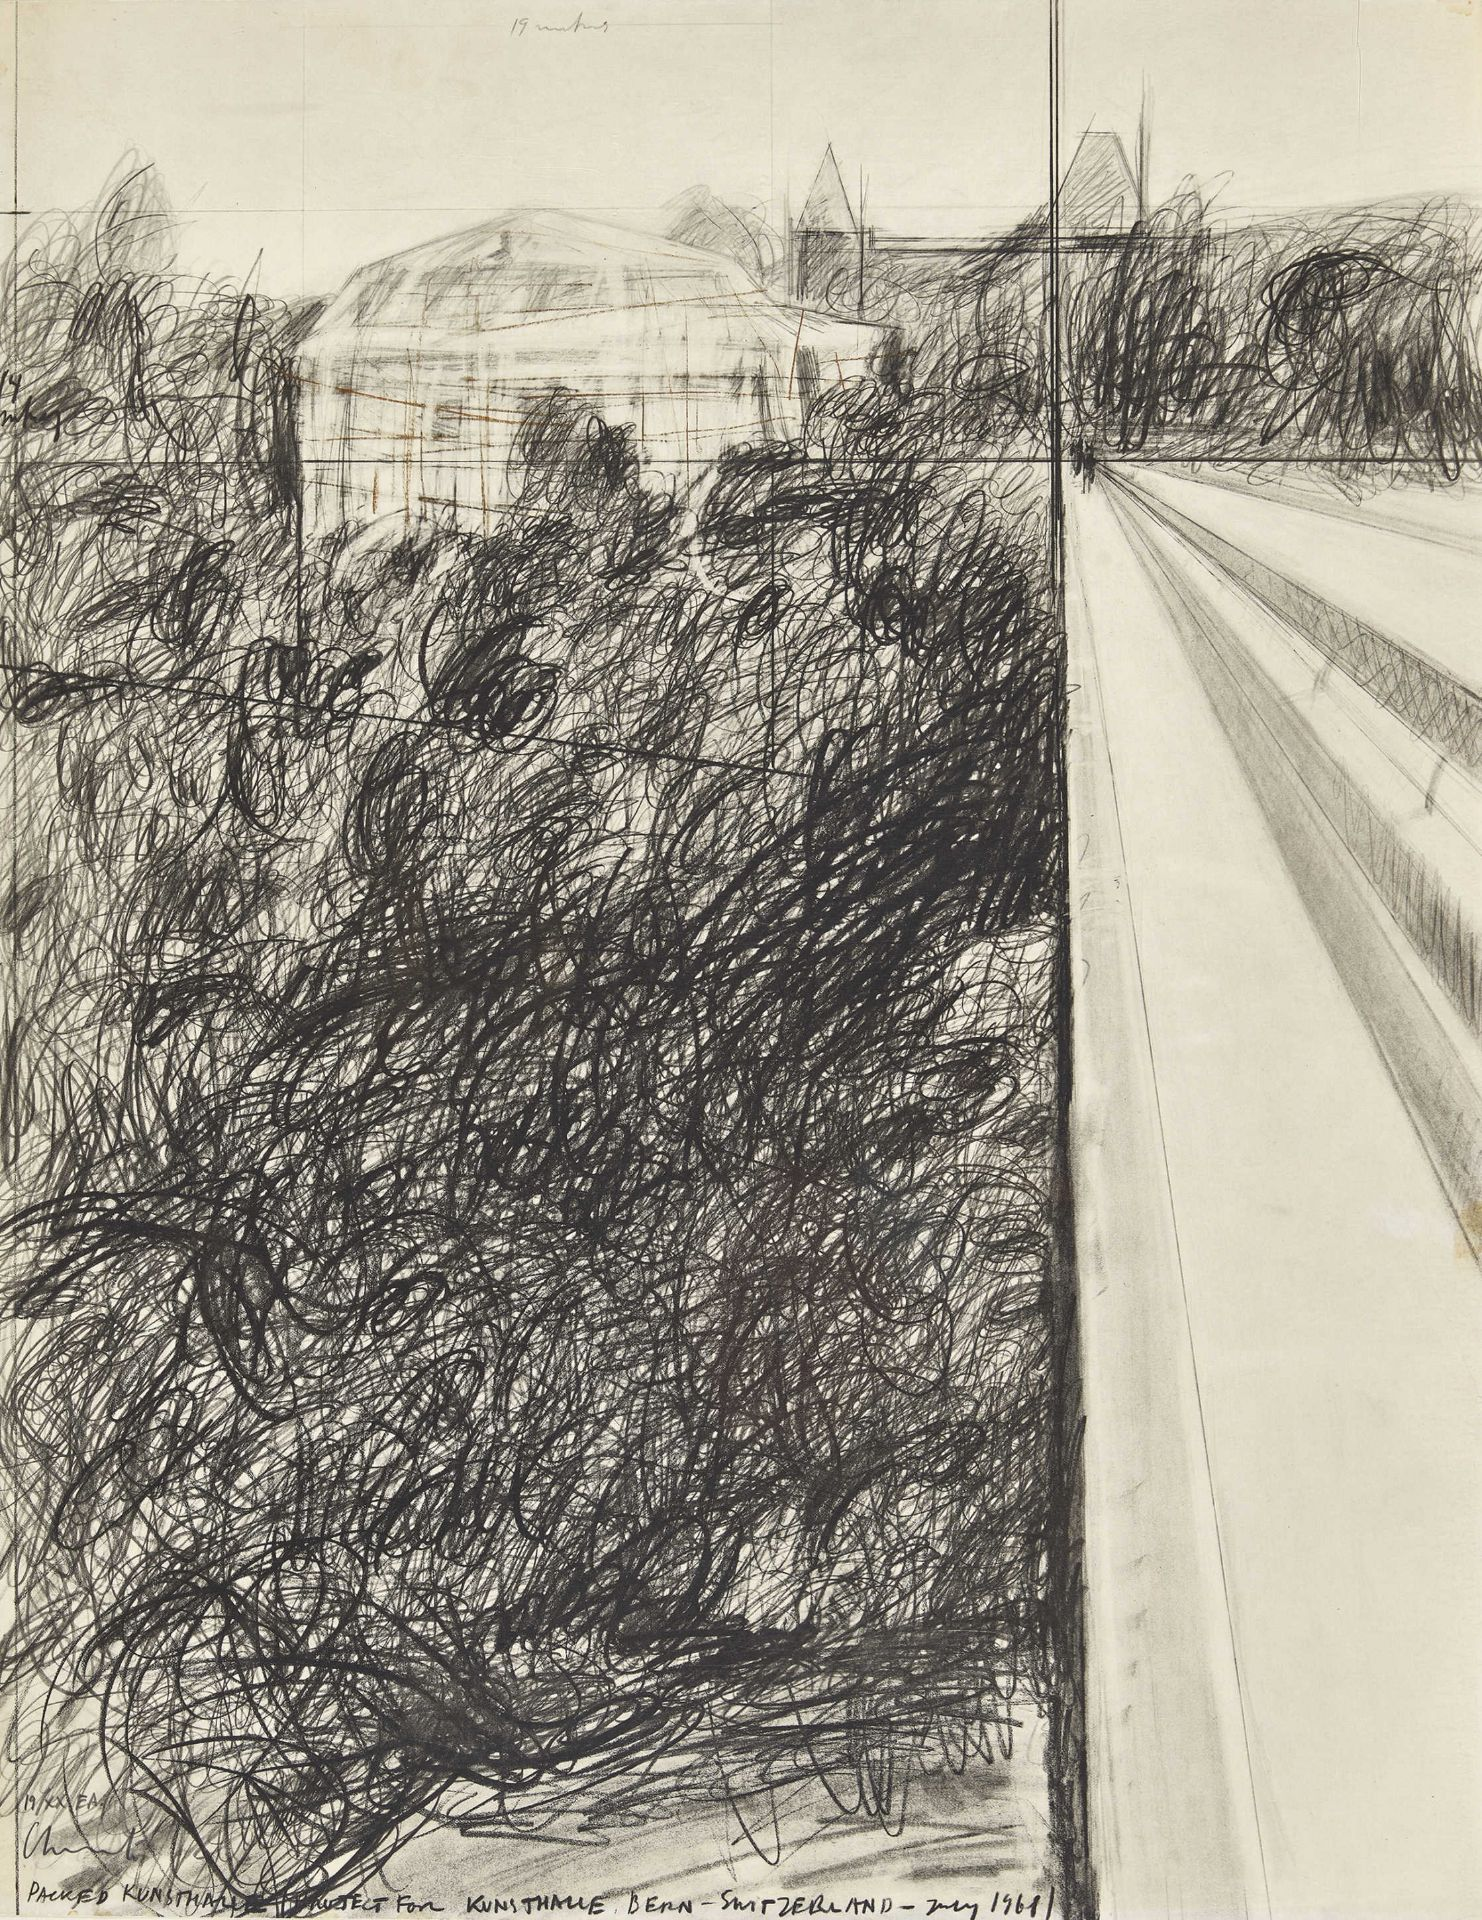 """CHRISTO & JEANNE-CLAUDE (JAVACHEFF, CHRISTO UND JEANNE-CLAUDE): """"Packed Kunsthalle Project for K"""